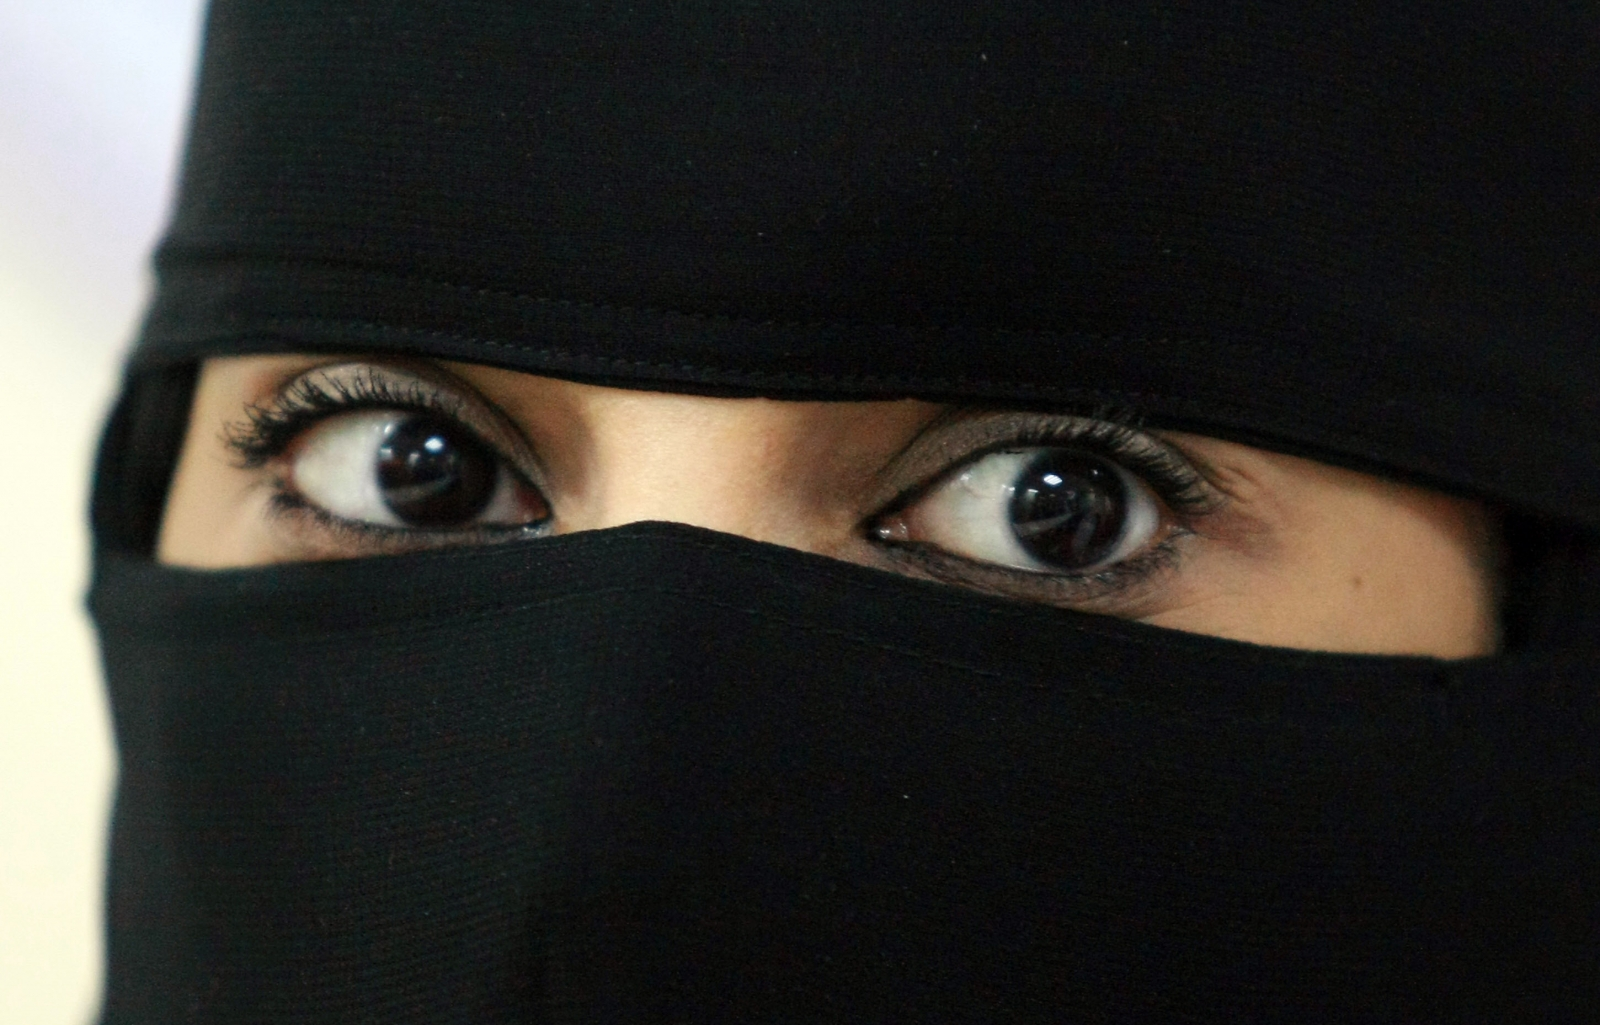 Saudi Arabia Student Kicked Off Bus For Removing Veil-6238